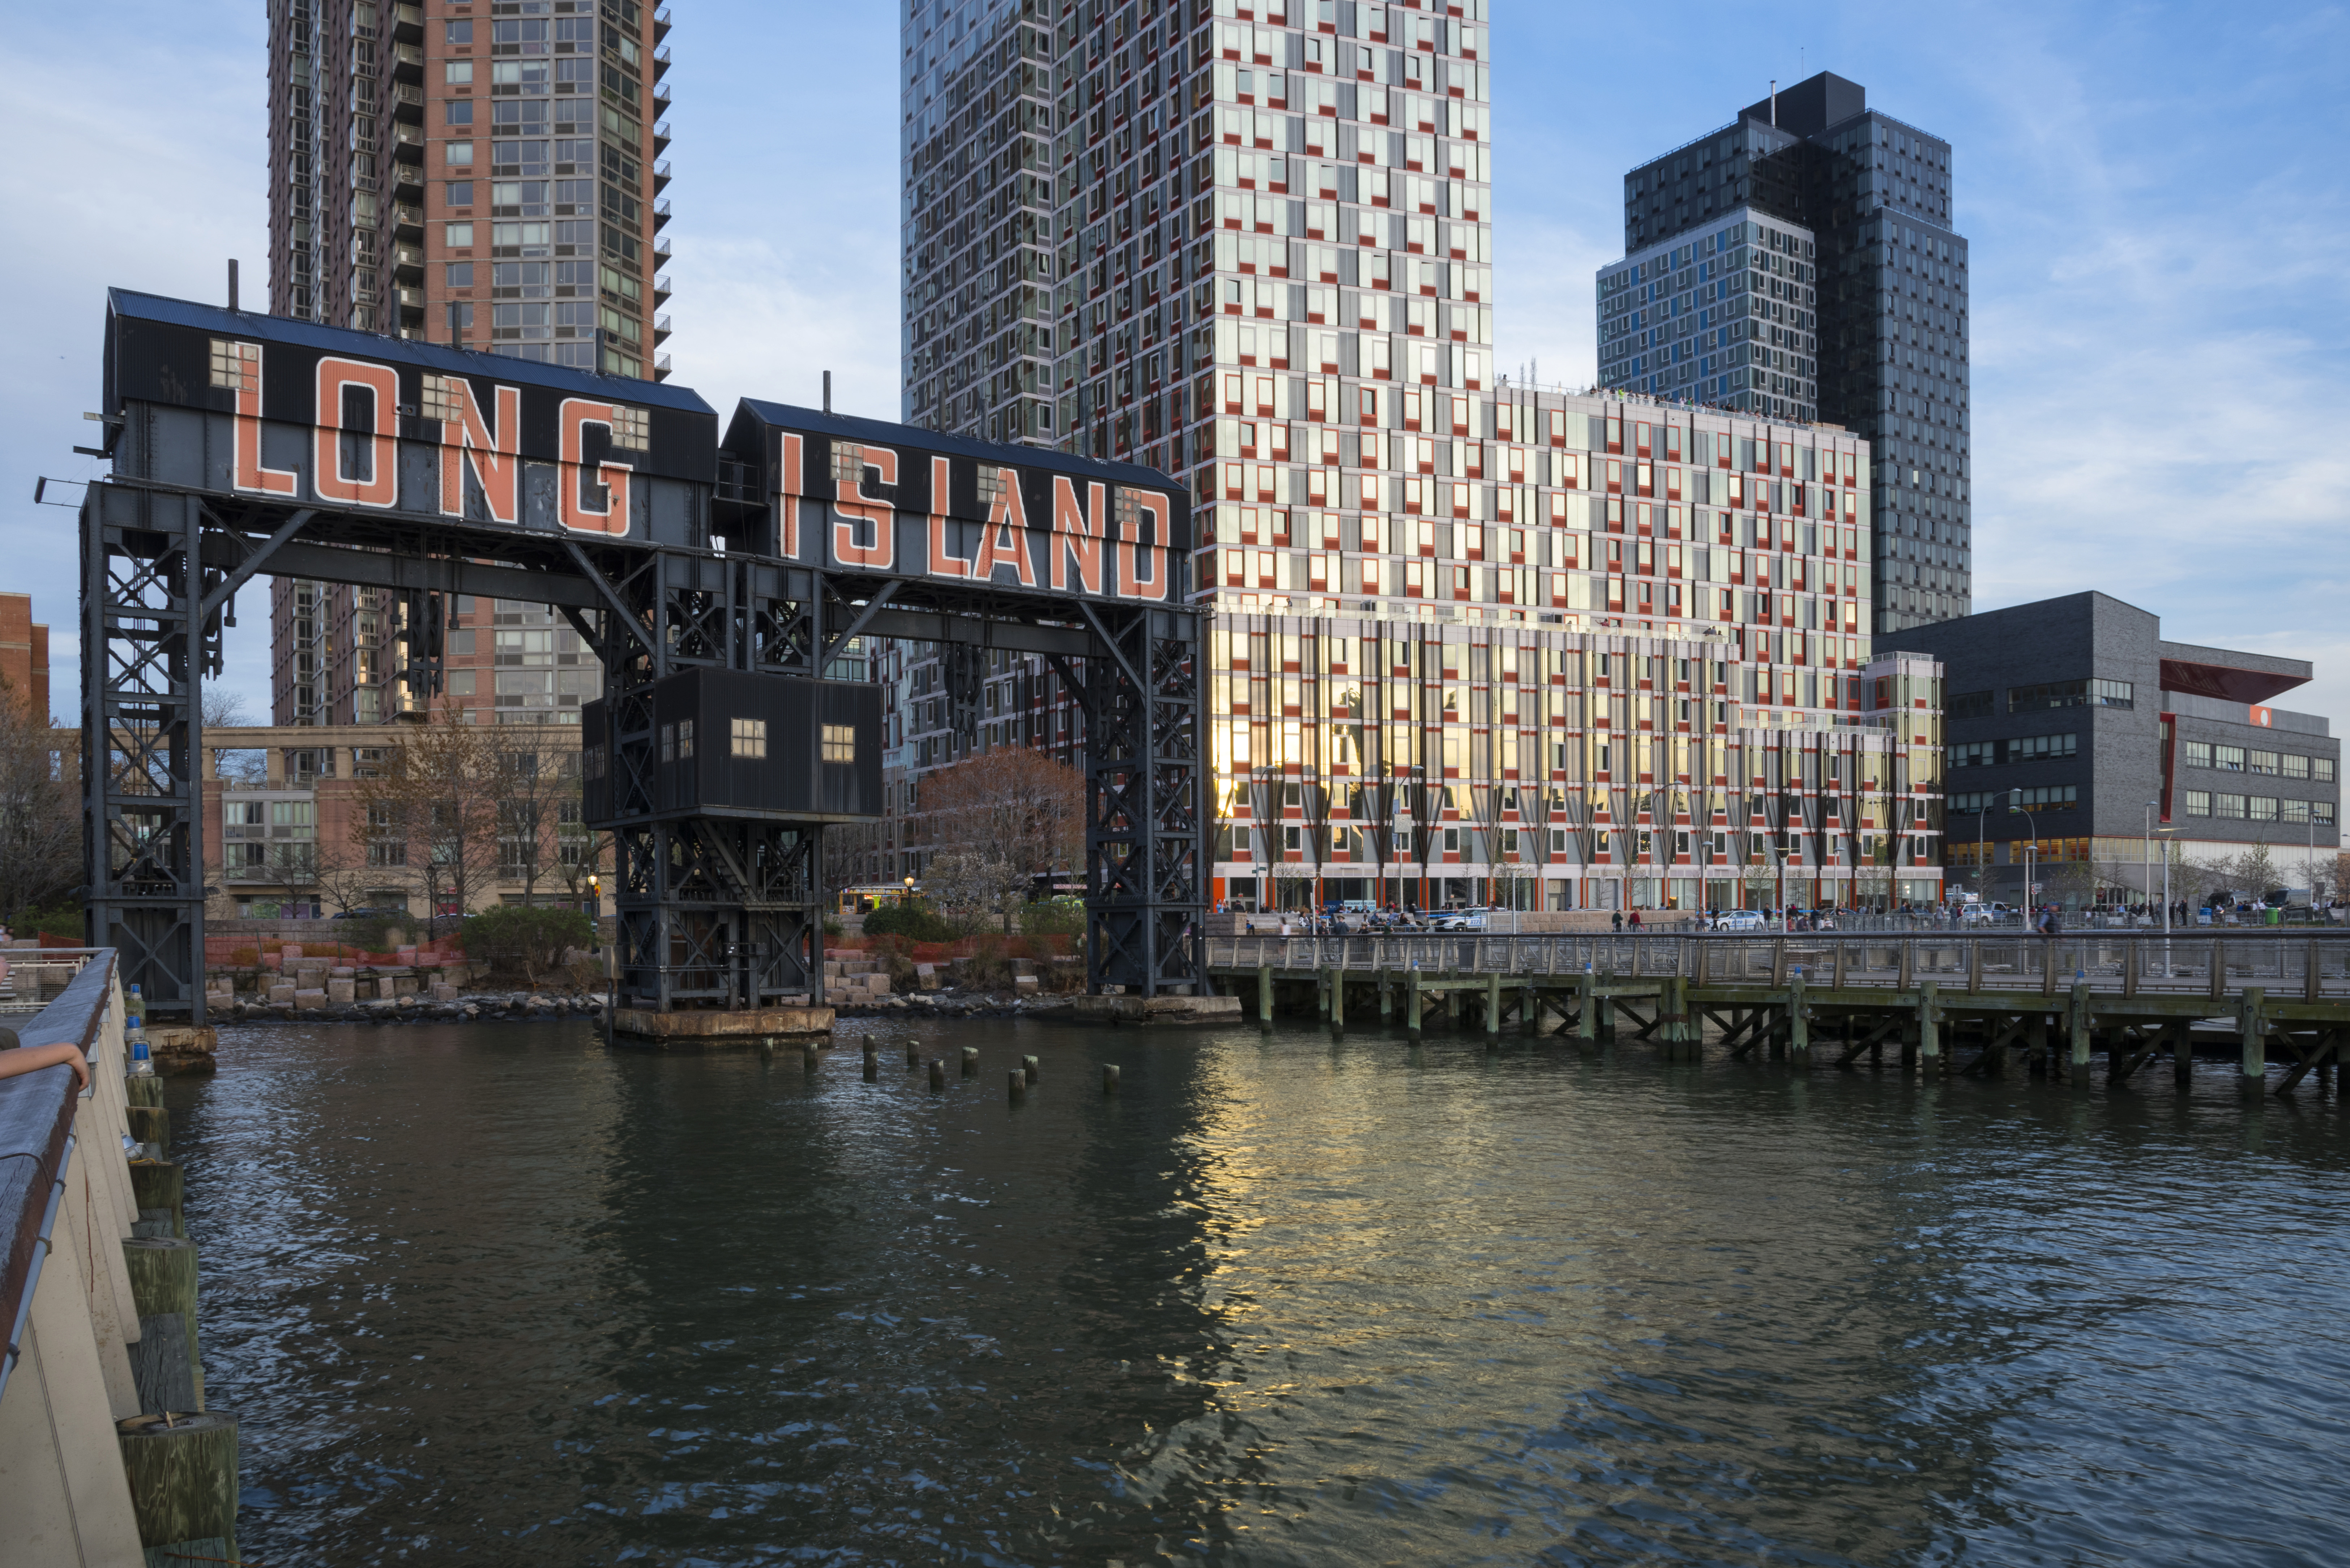 Amazon's former HQ2 location is doing just fine without Amazon